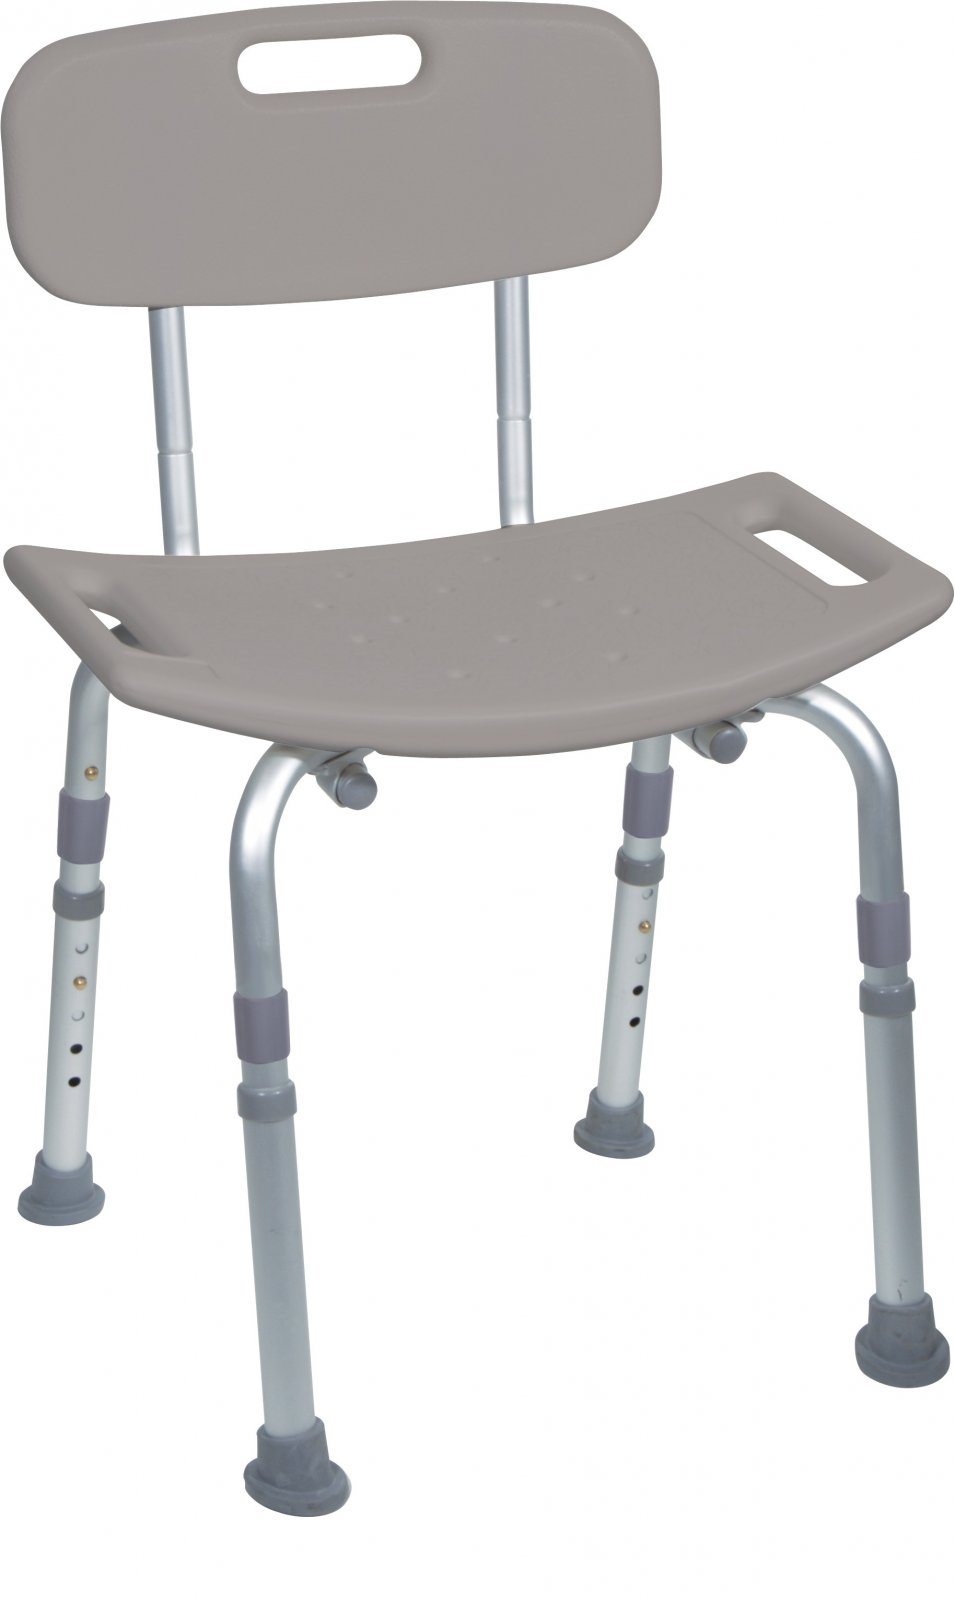 drive shower chair weight limit kiddies covers for hire ready set go deluxe aluminum 822383254081